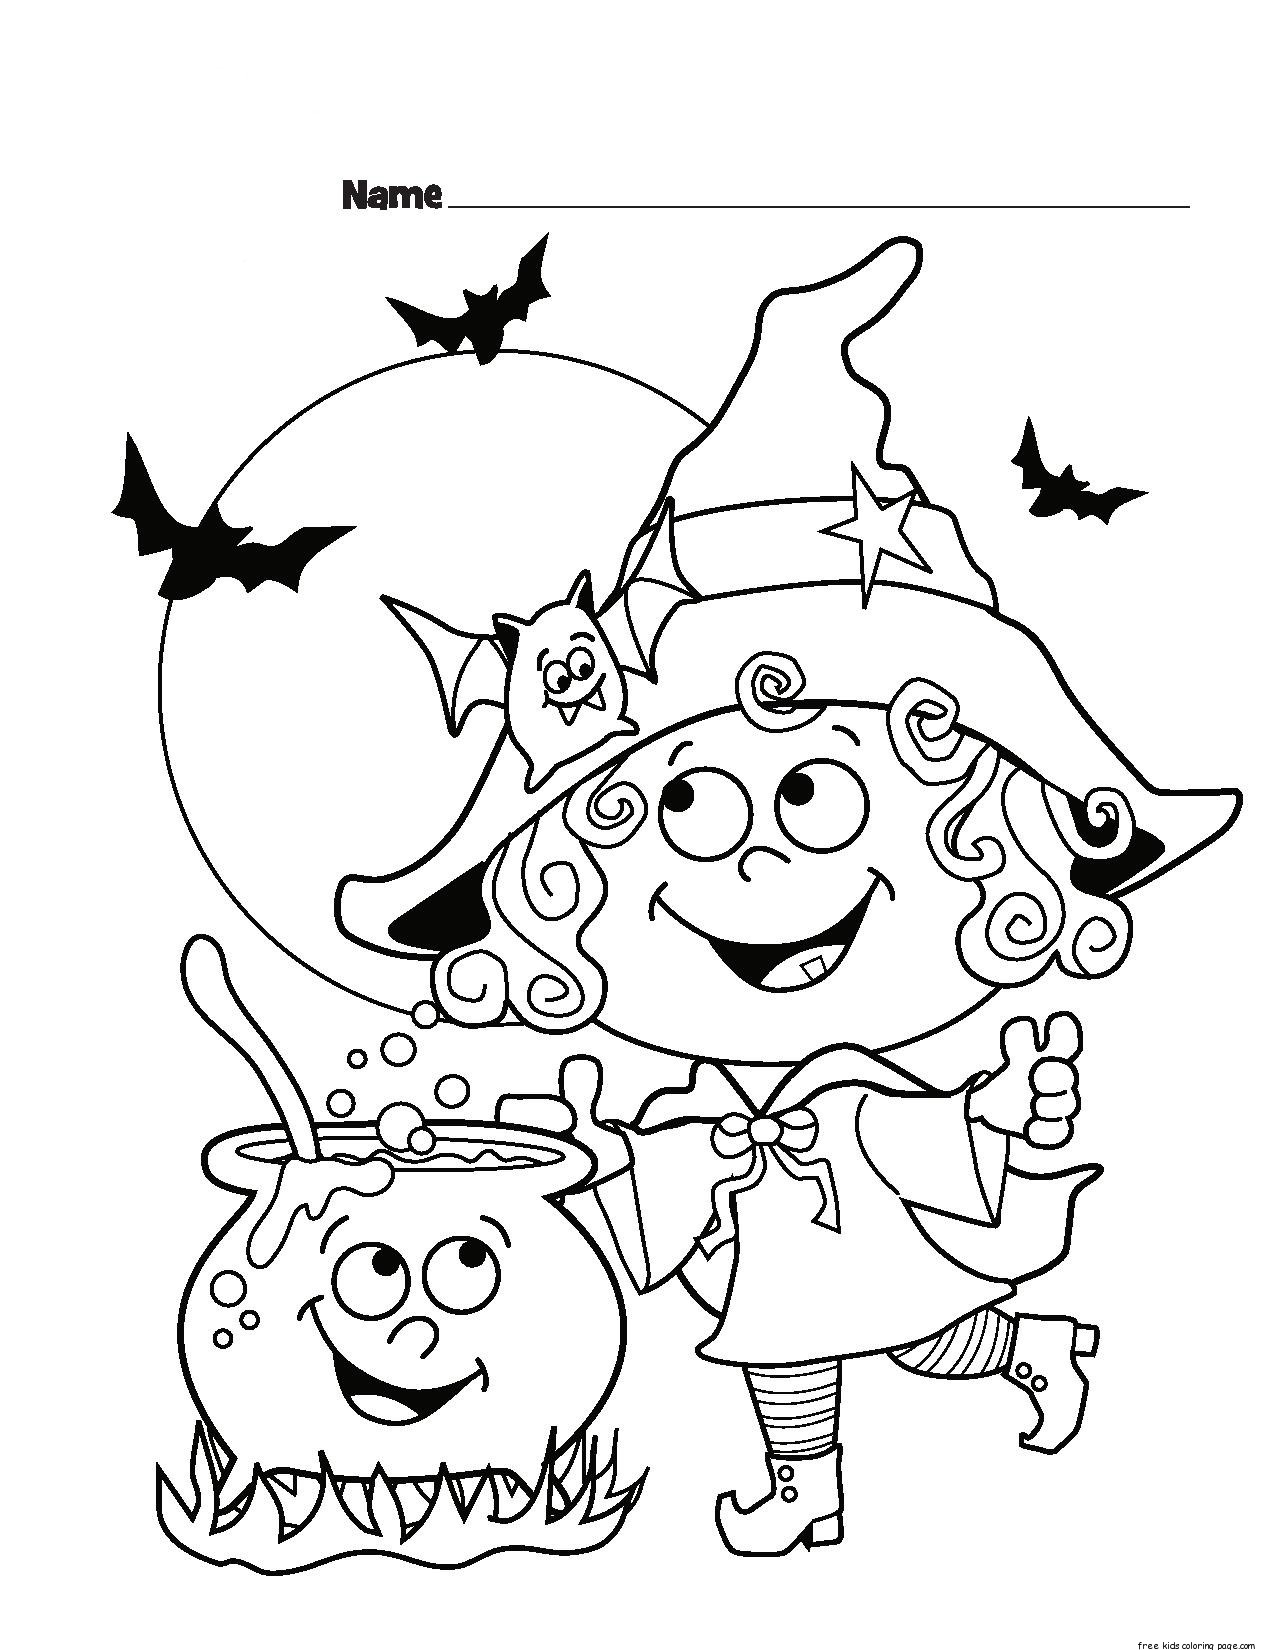 coloring printable witch 30 free witch coloring pages printable witch coloring printable